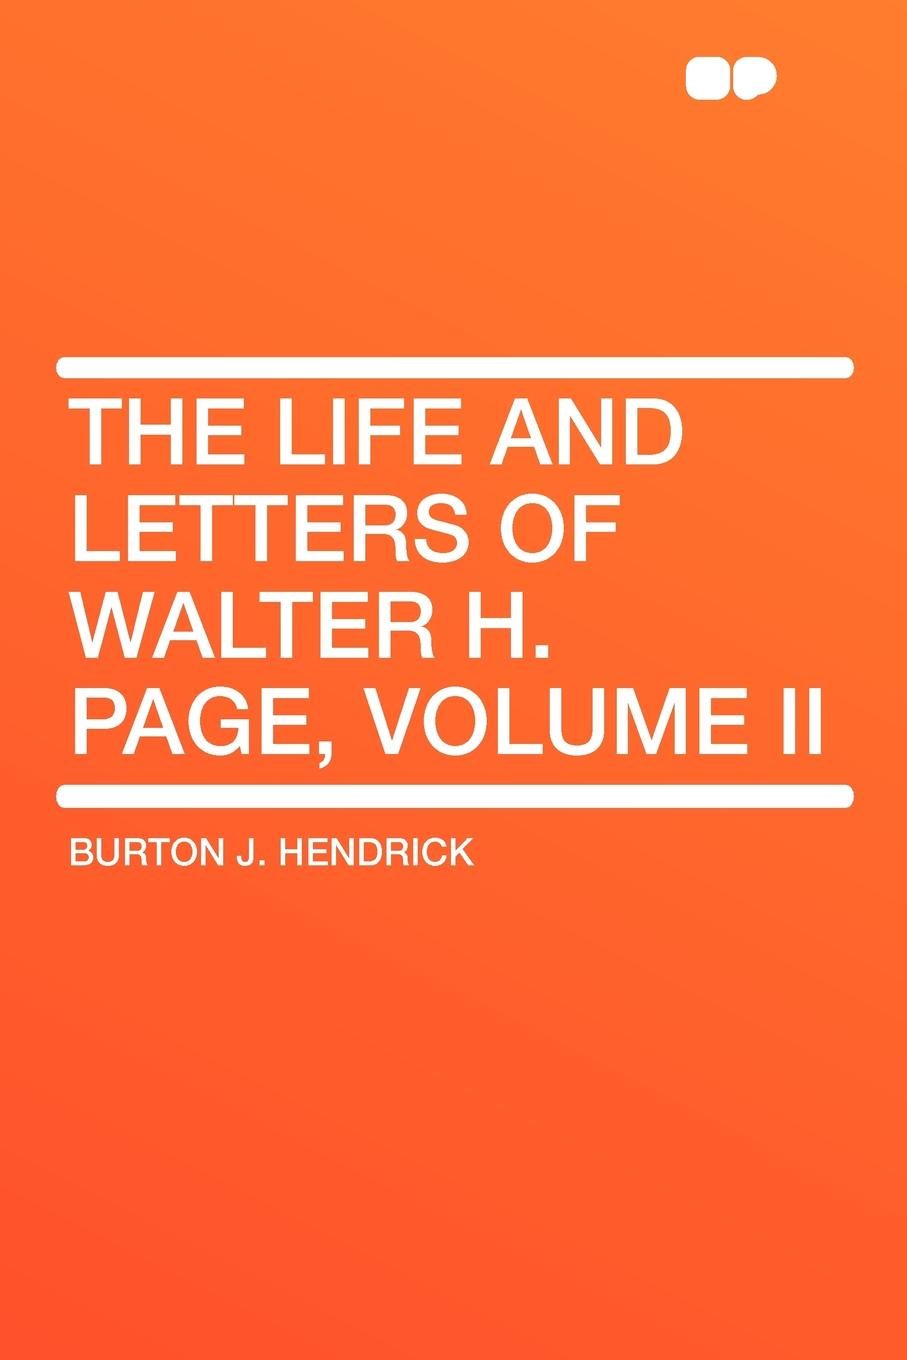 Burton J. Hendrick The Life and Letters of Walter H. Page, Volume II casio ae 1000w 1b page 5 page 1 page 1 page 3